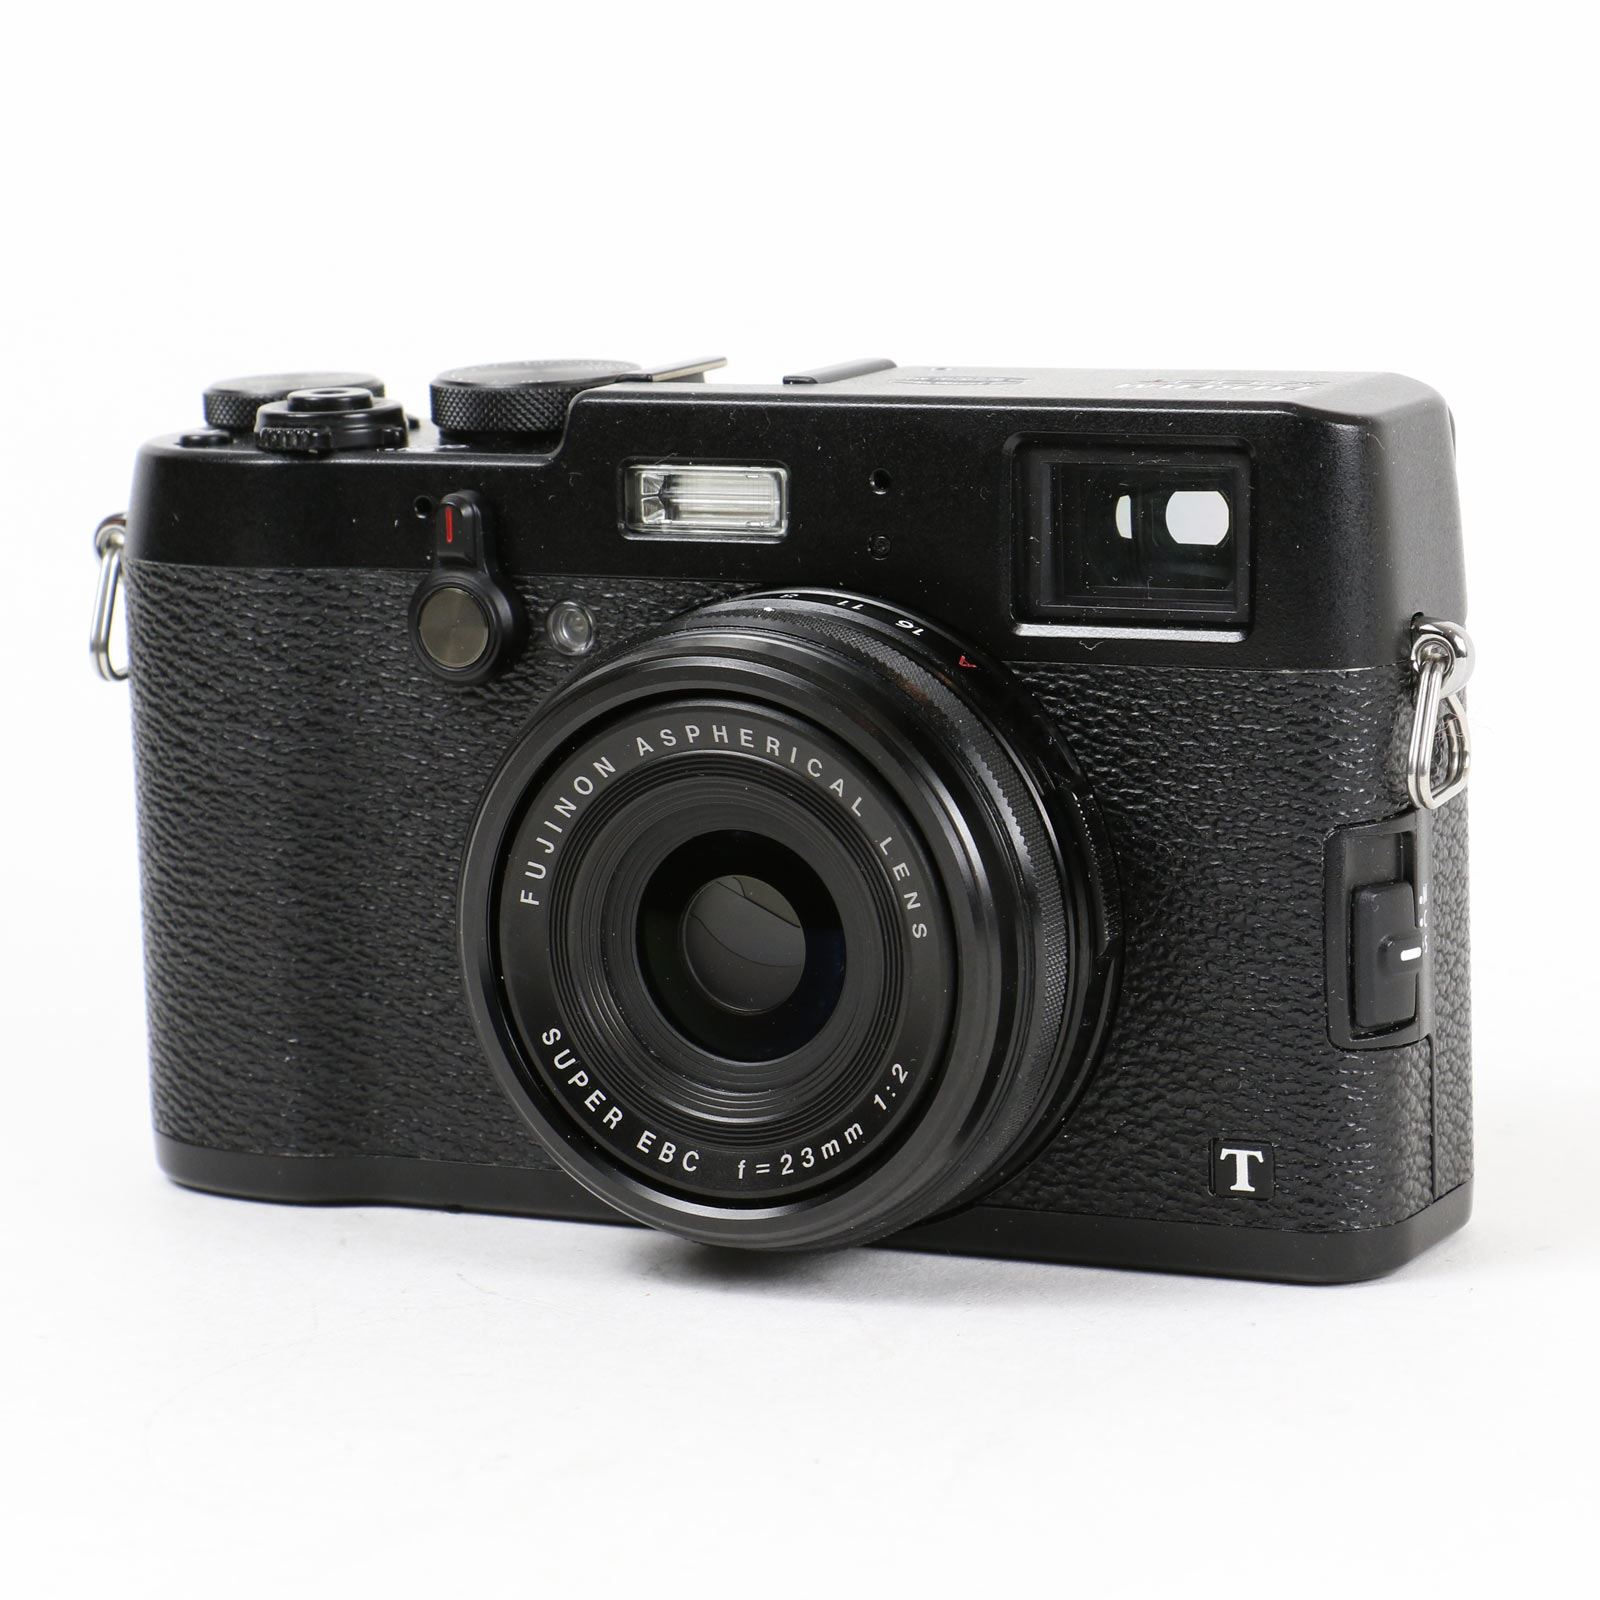 Image of Used Fuji X100T Digital Camera - Black